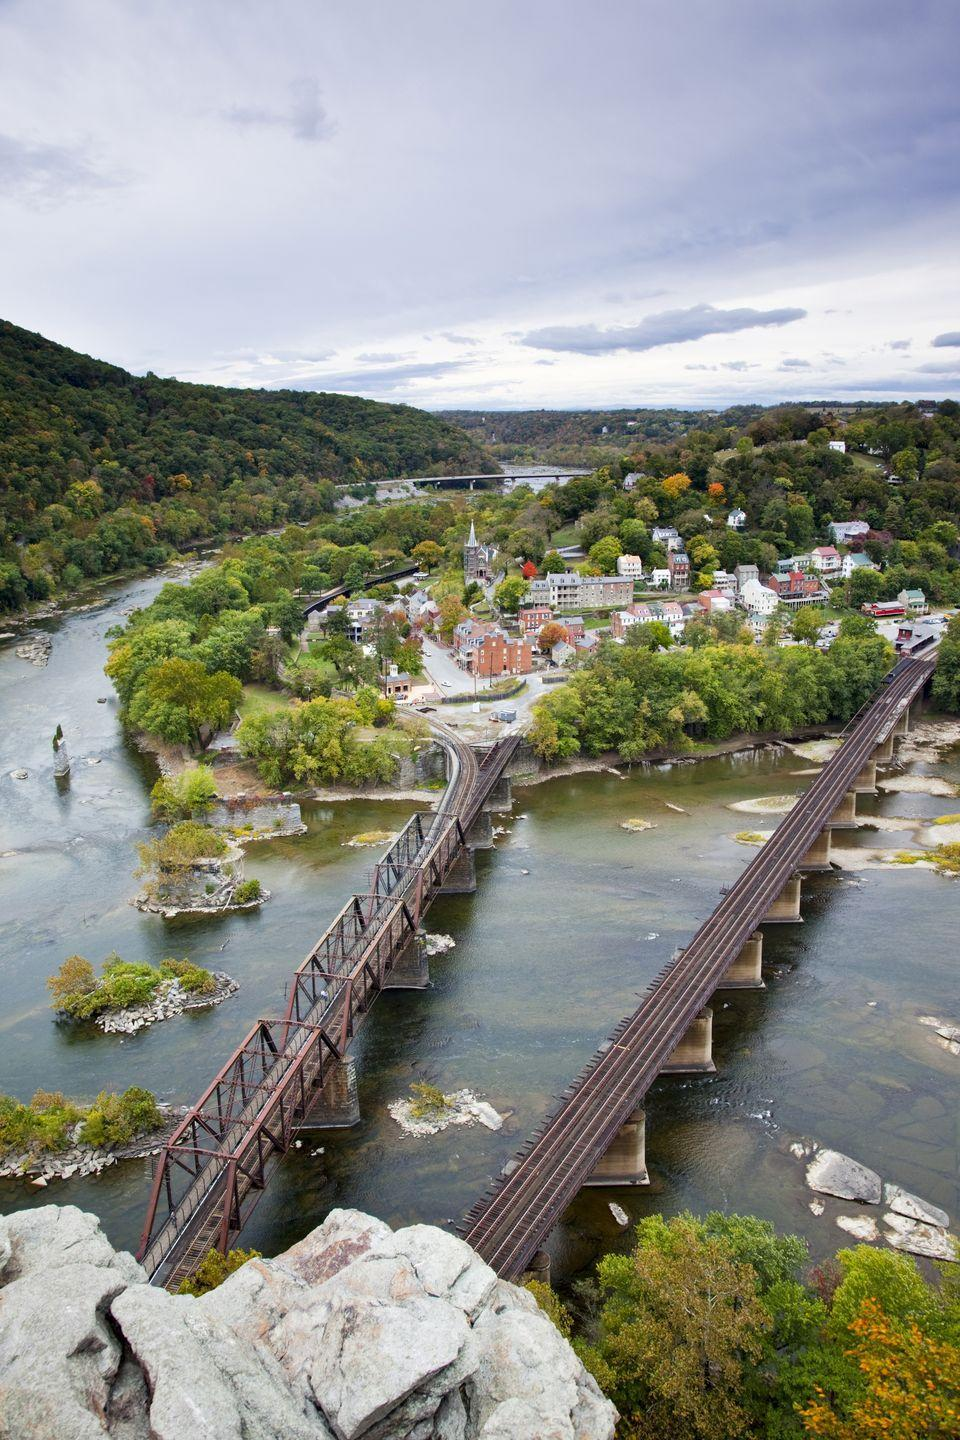 """<p><strong>Where: </strong>Harpers Ferry, West Virginia</p><p><strong>Why We Love It: </strong>When Thomas Jefferson visited in 1783 he called this small town where the Potomac and Shenandoah rivers meet """"perhaps one of the most stupendous scenes in nature.""""</p>"""